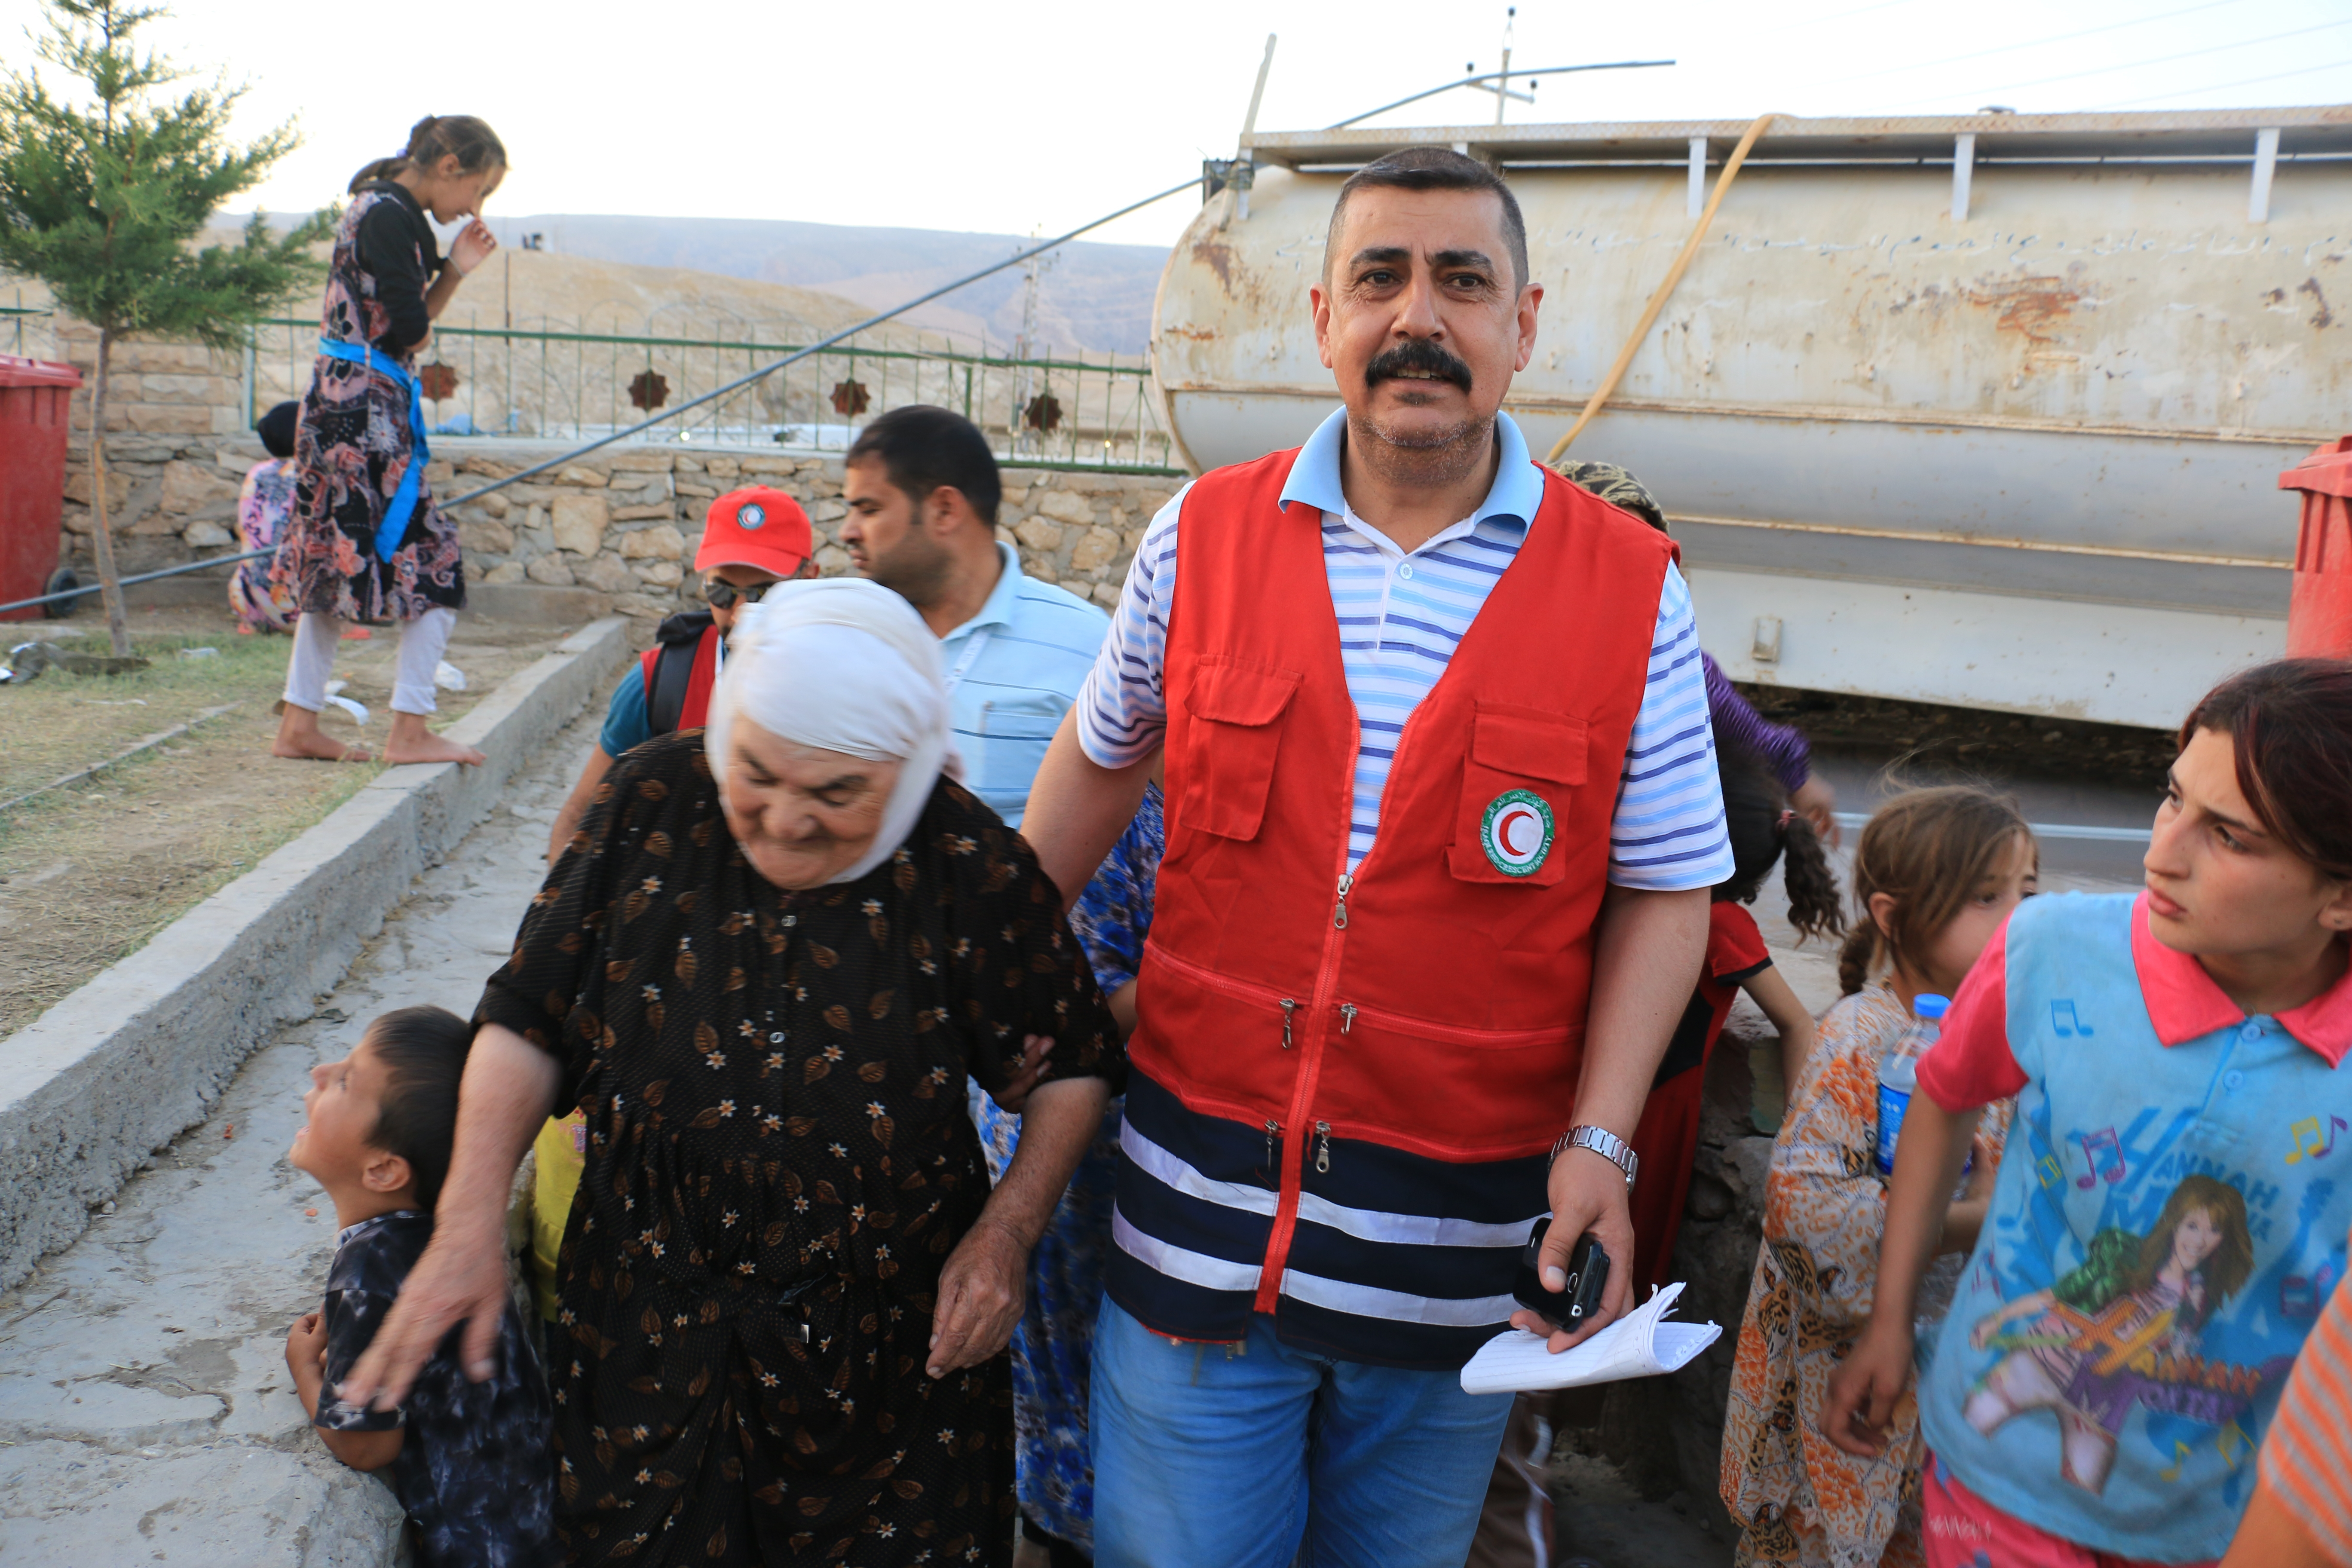 Muhammad Jasem Shariif, the director of Sinjar office of Iraq Red Crescent, helps a woman who has come from Tal Afar. © Ibrahim Malla / IFRC